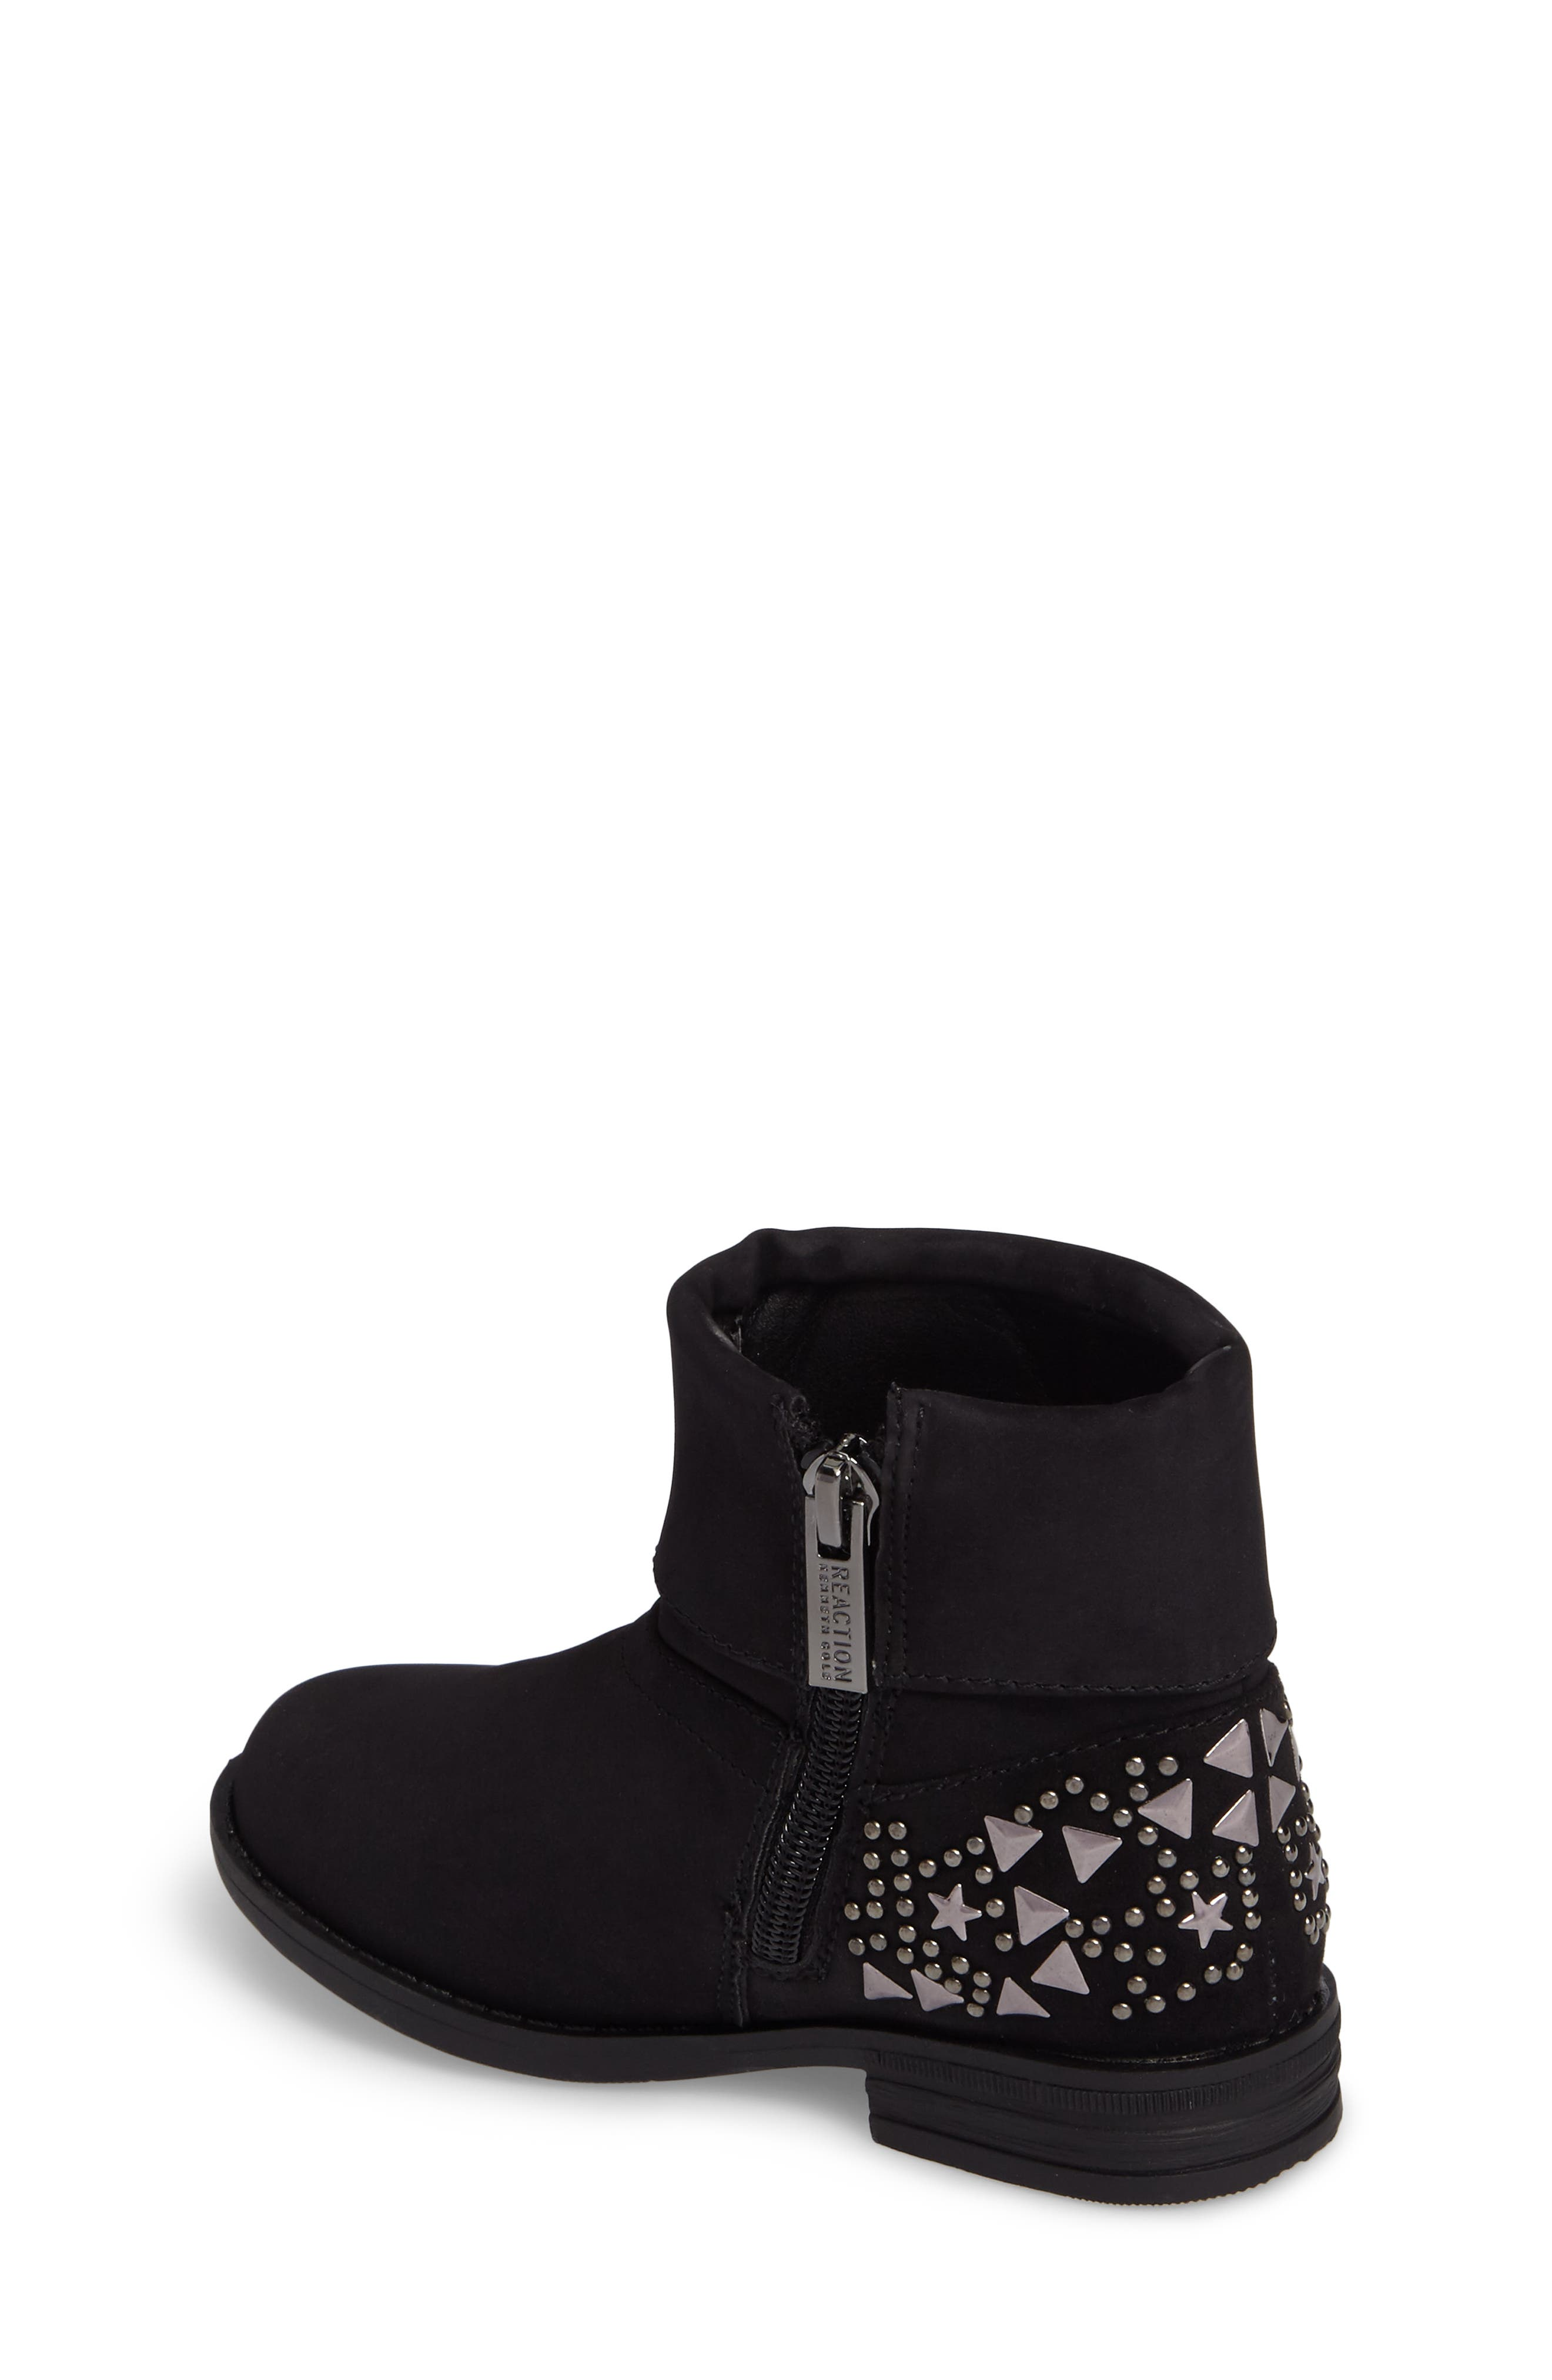 Wild Star Studded Bootie,                             Alternate thumbnail 2, color,                             Black